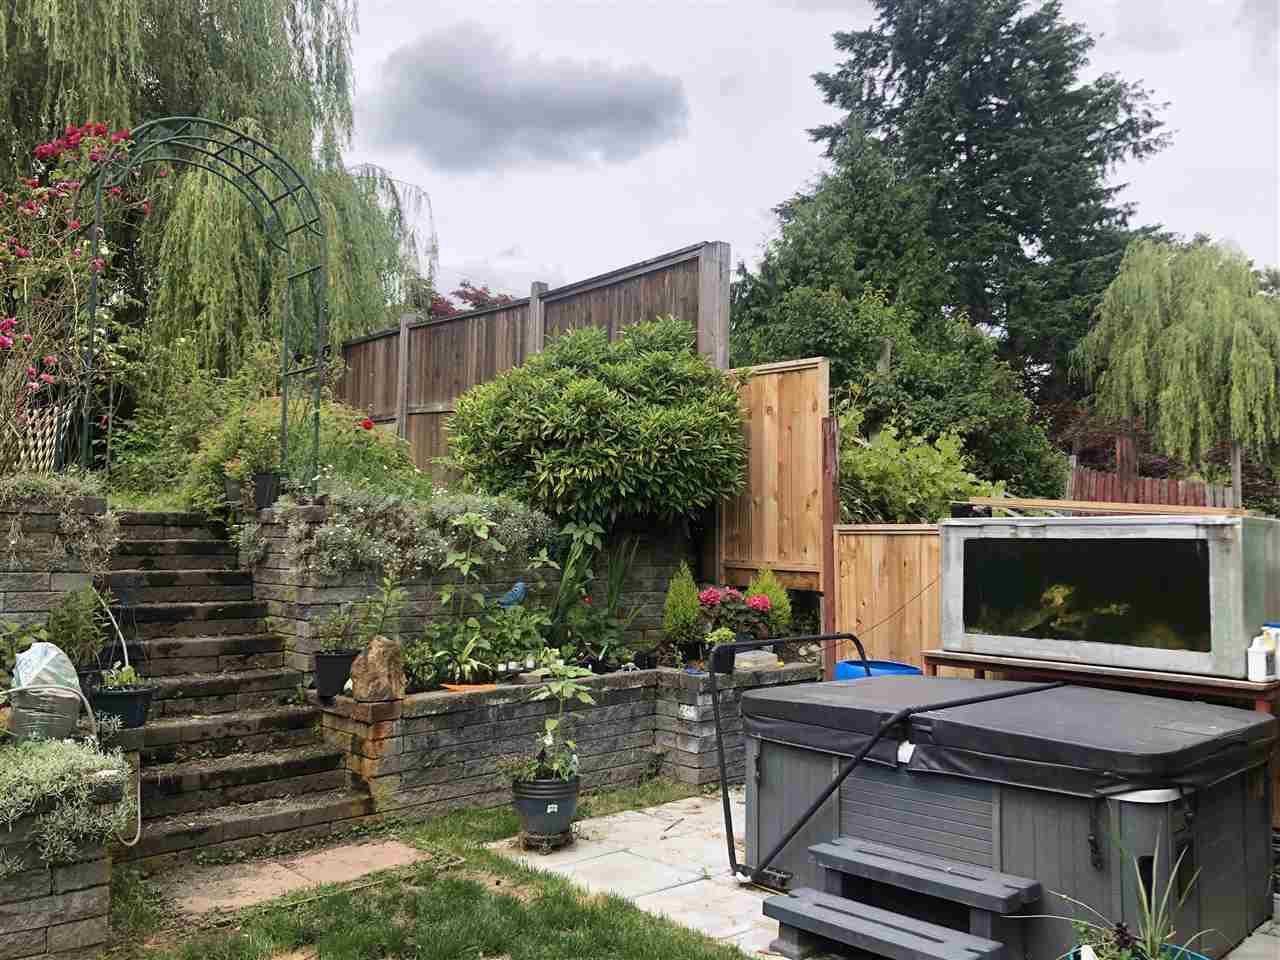 Main Photo: 32643 BOBCAT Drive in Mission: Mission BC House 1/2 Duplex for sale : MLS®# R2460098